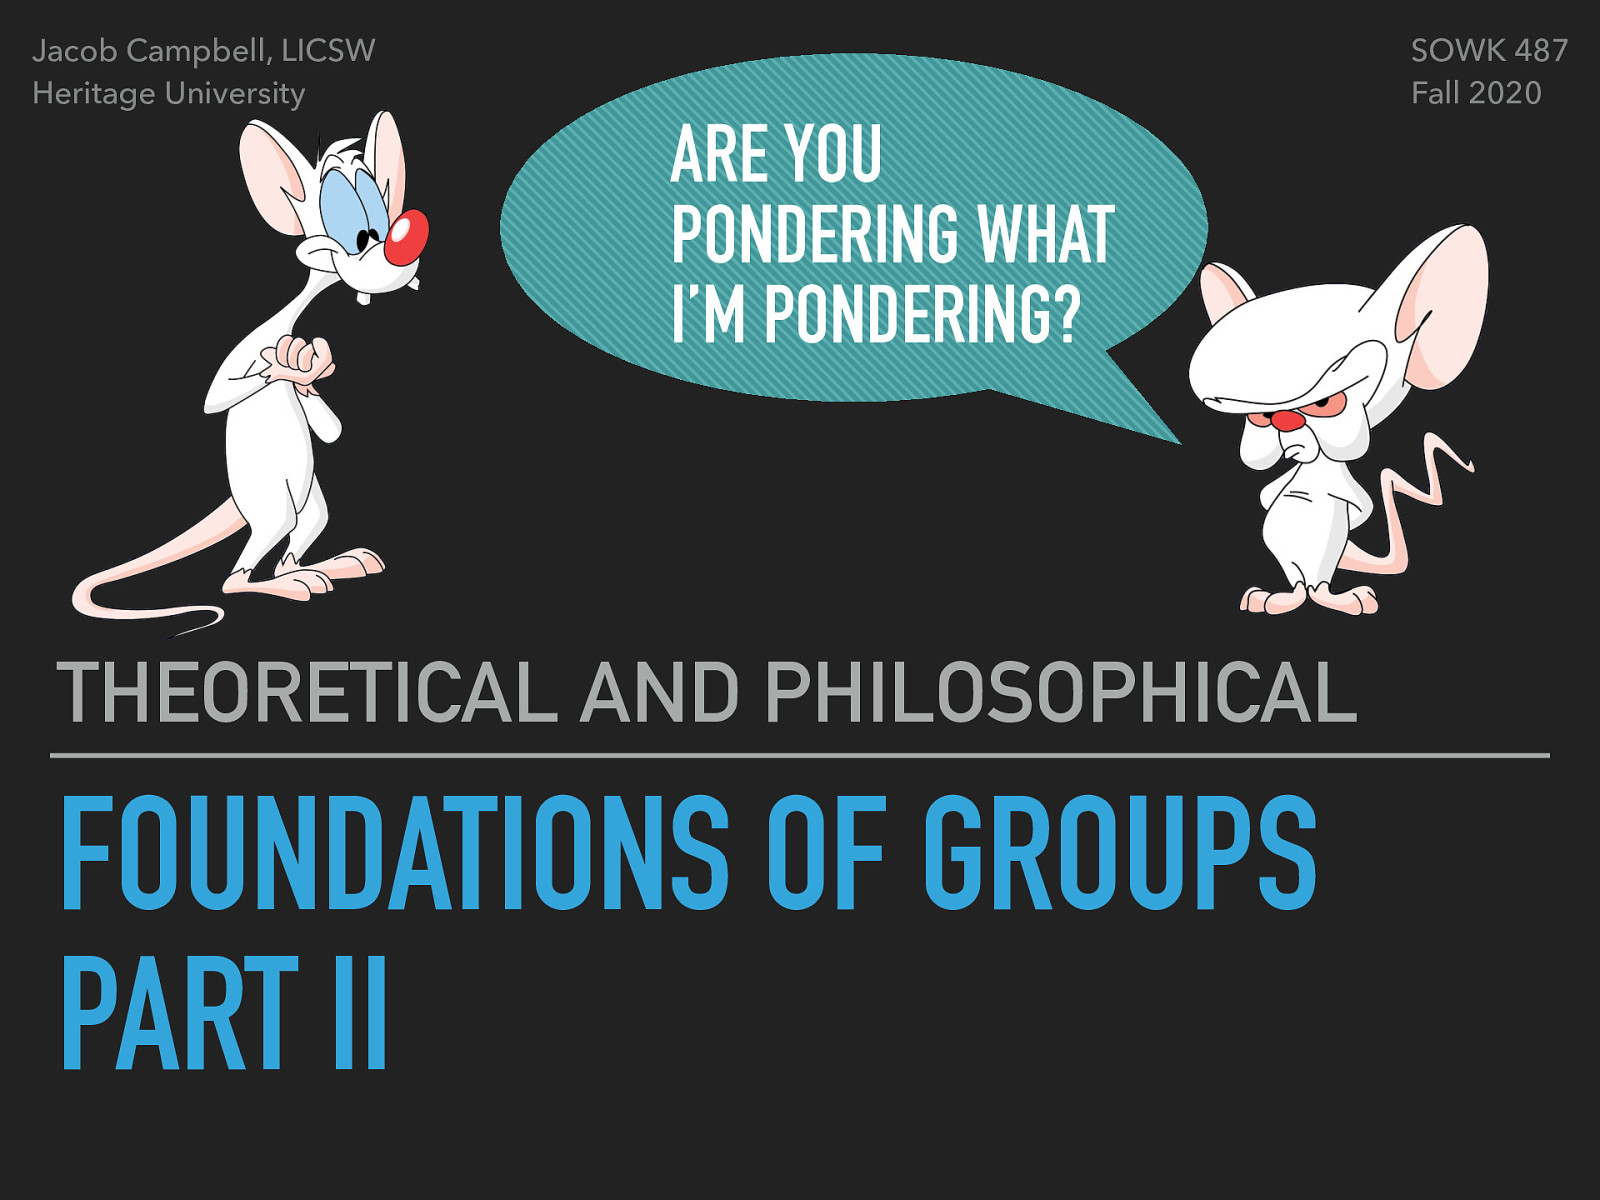 Week 03 - Foundations for Groups Part II